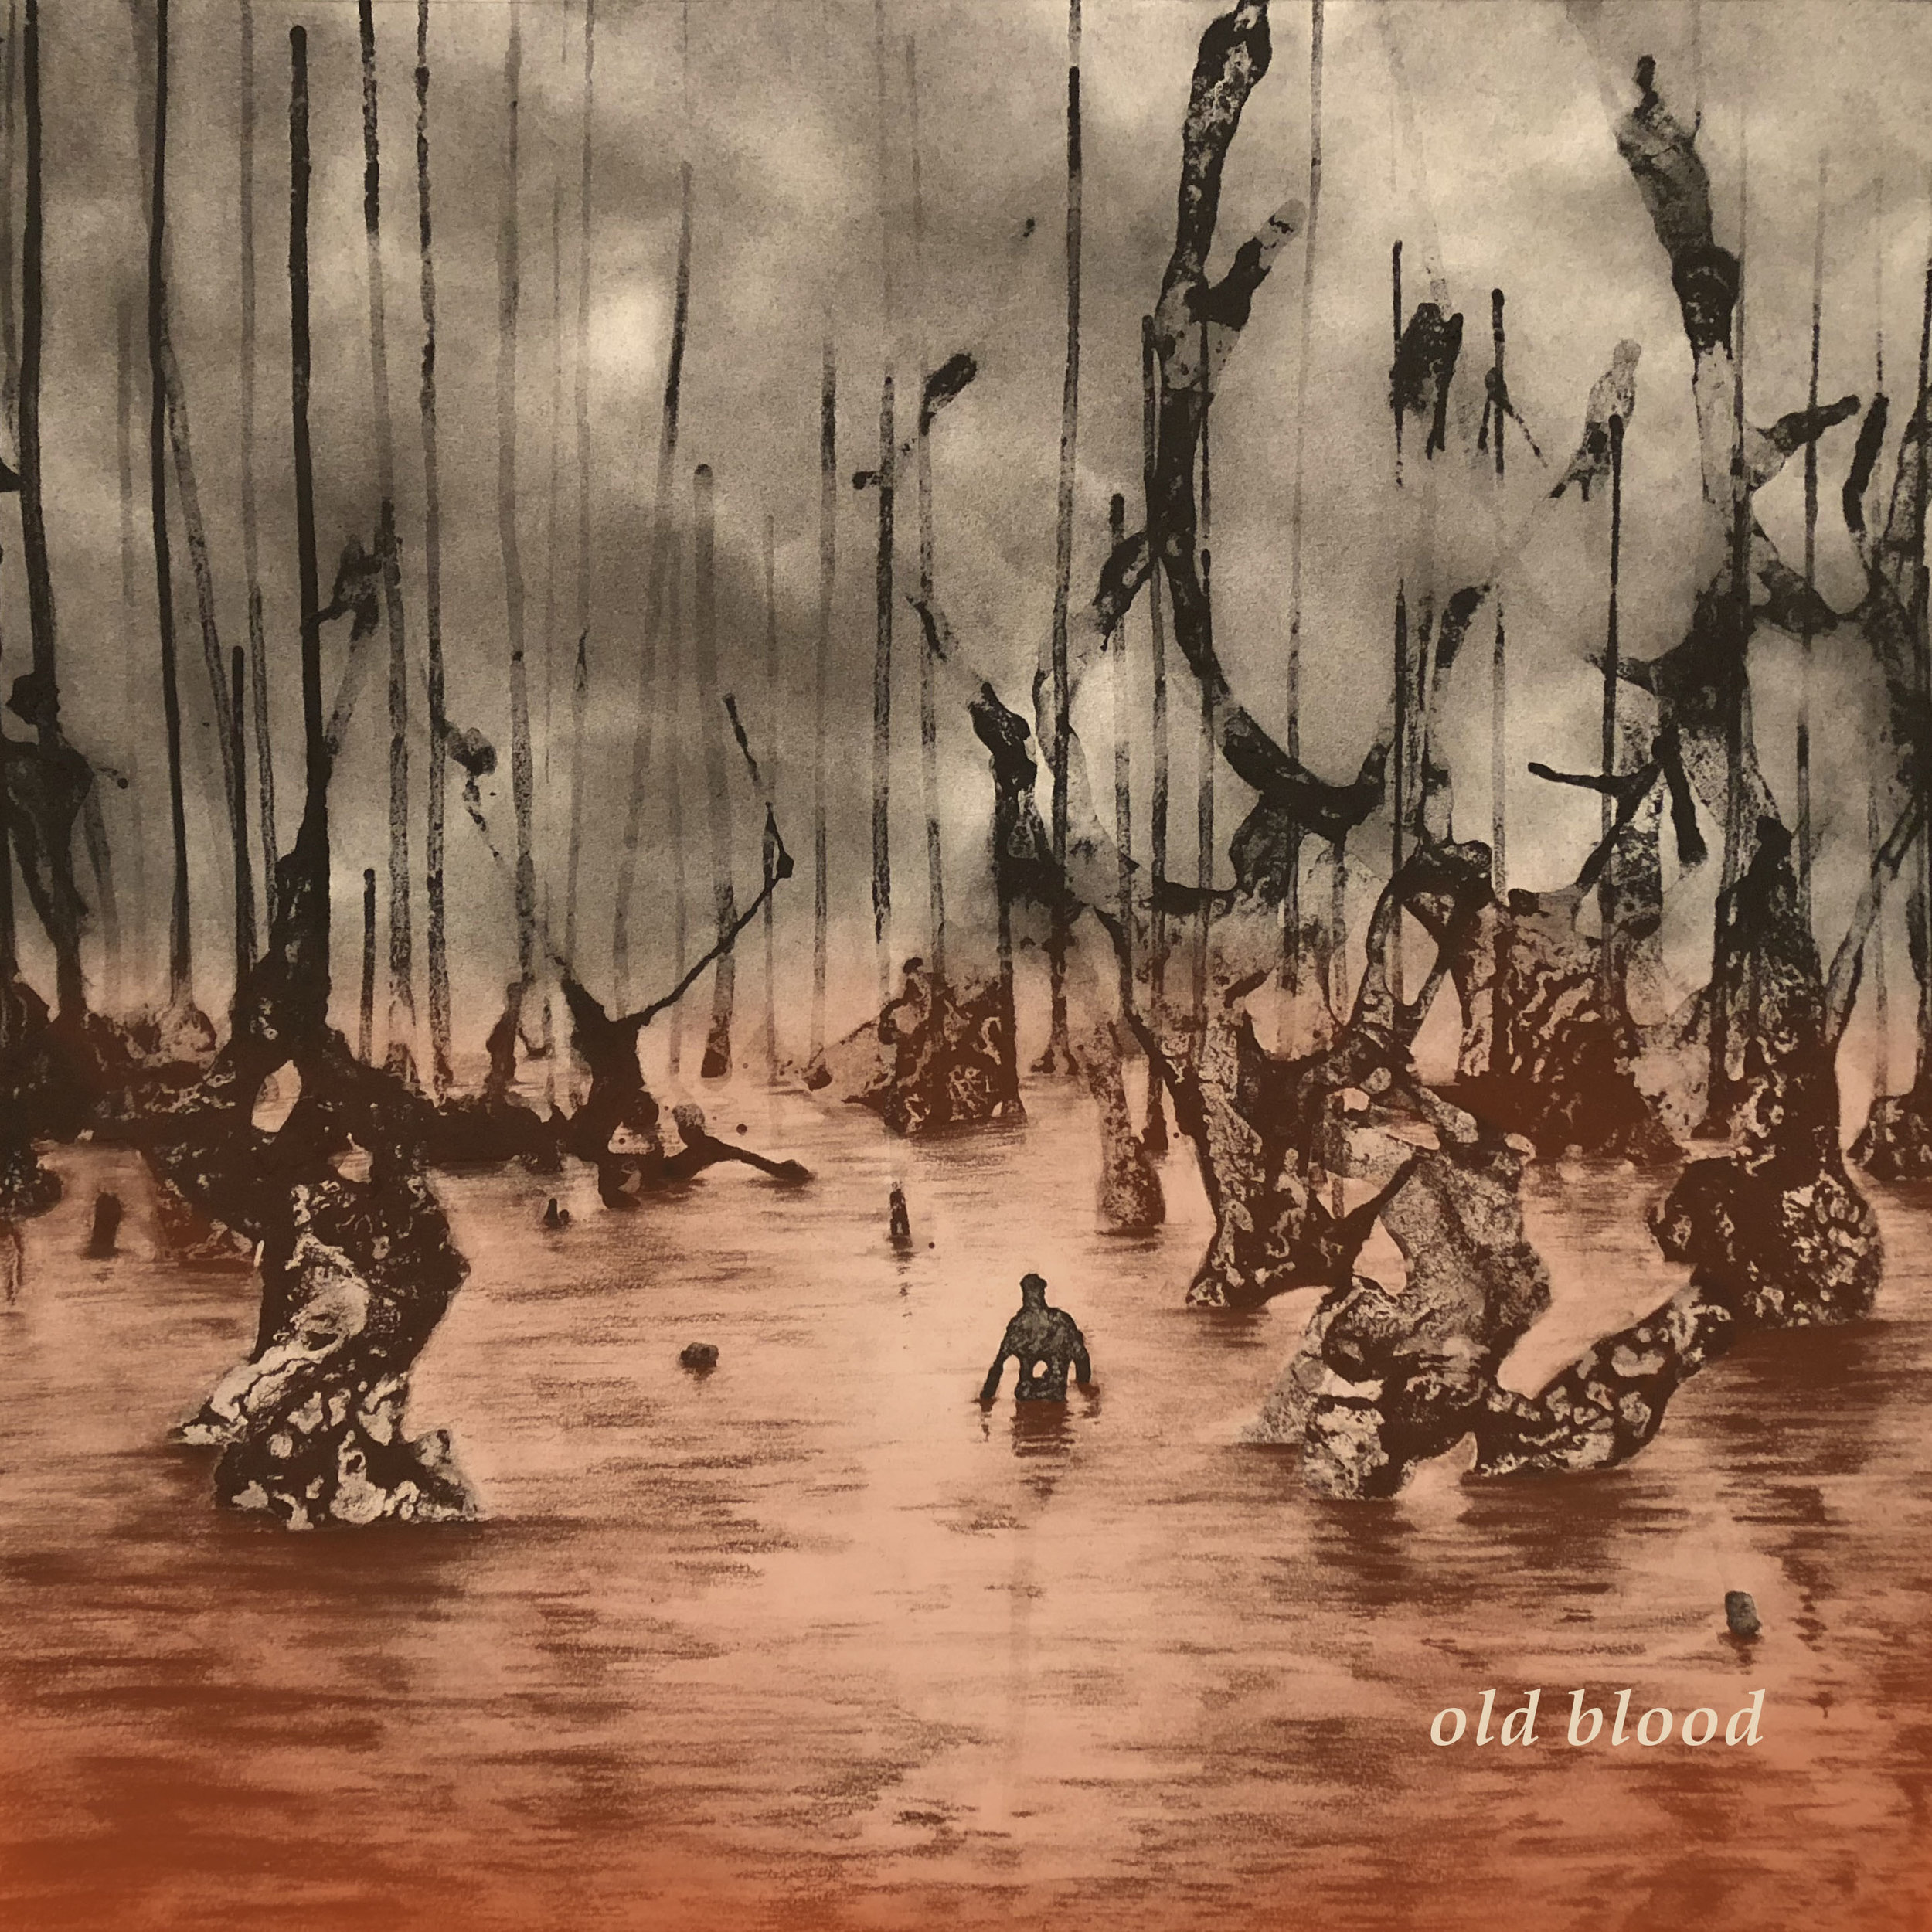 old blood album cover.jpg